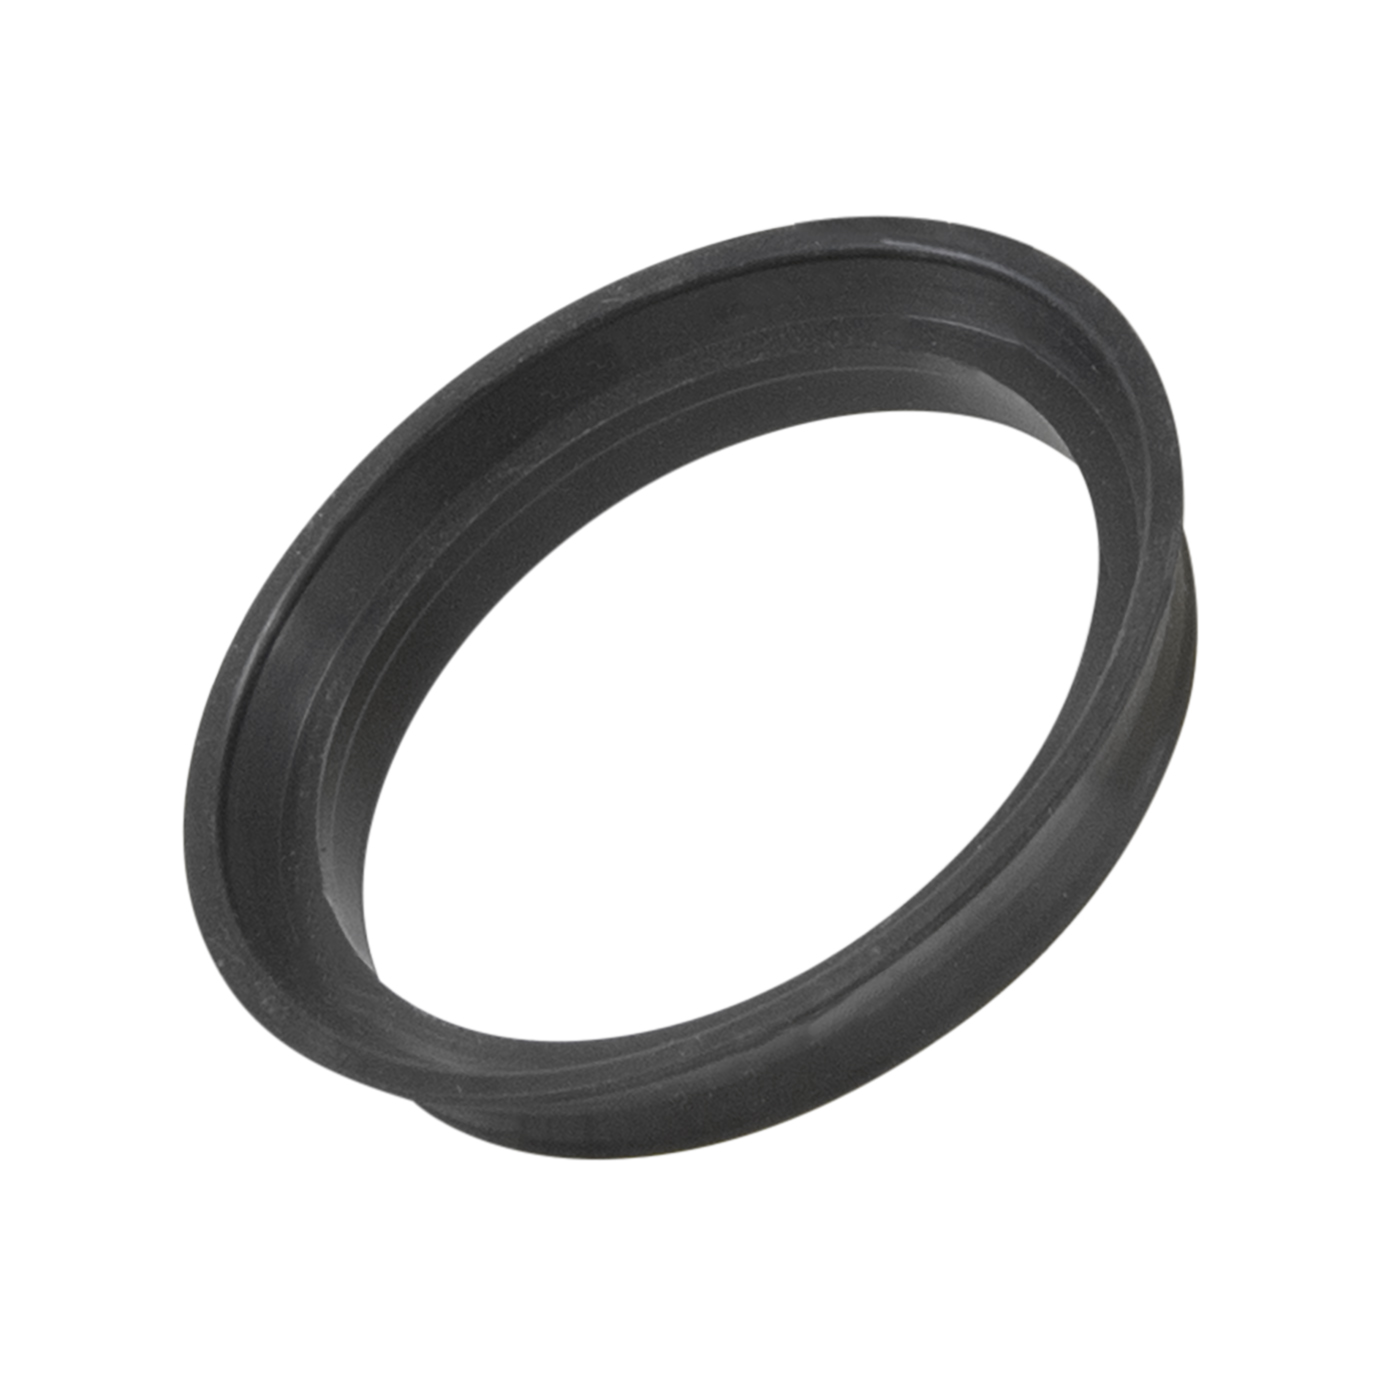 YMSS1007 - Replacement king-pin rubber seal for Dana 60